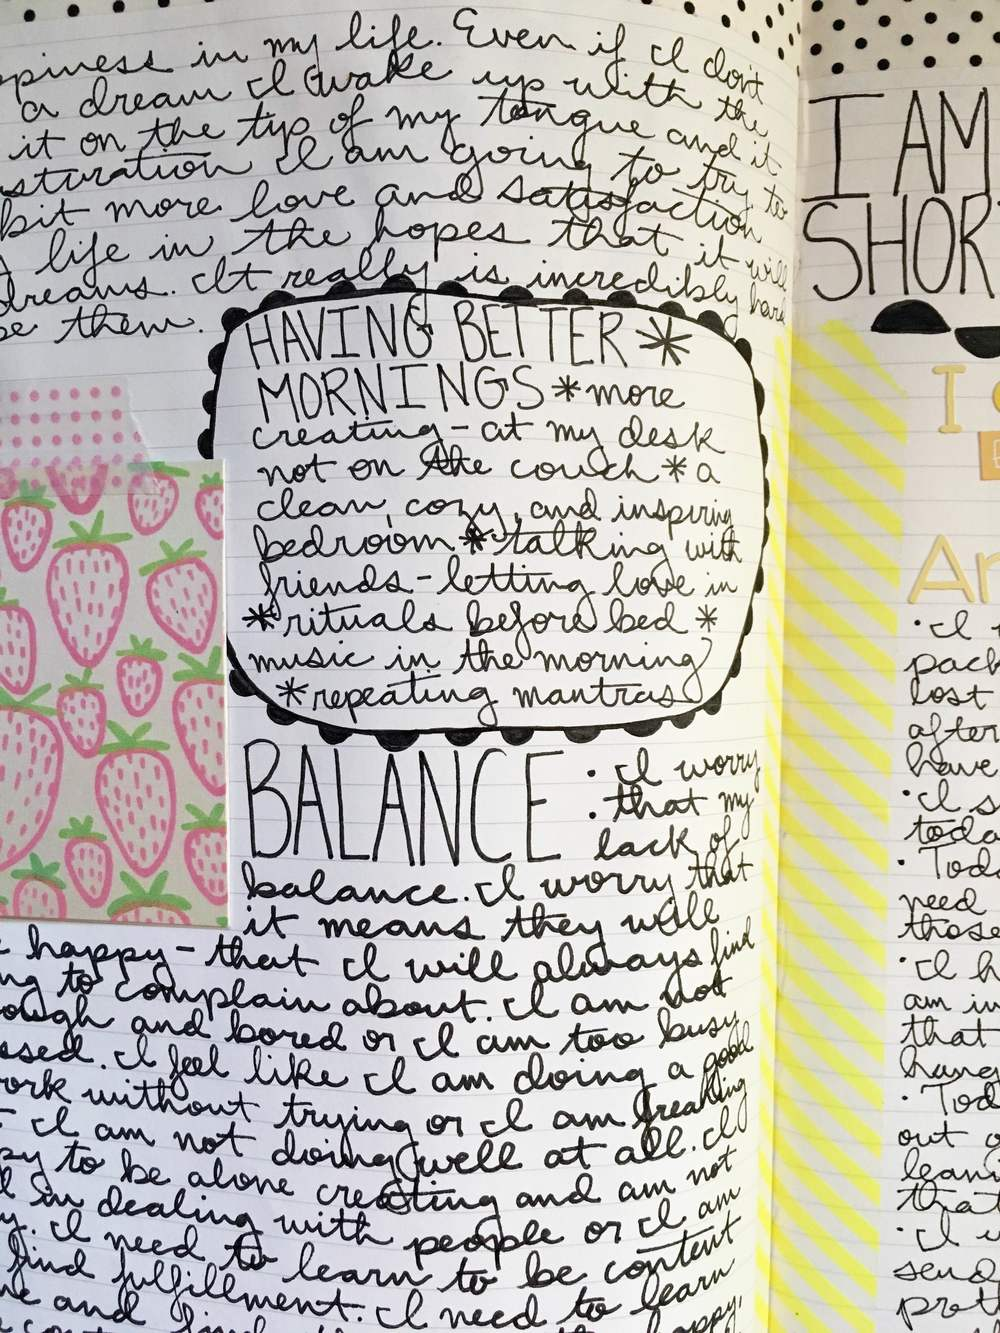 Anything Goes Journal Notes